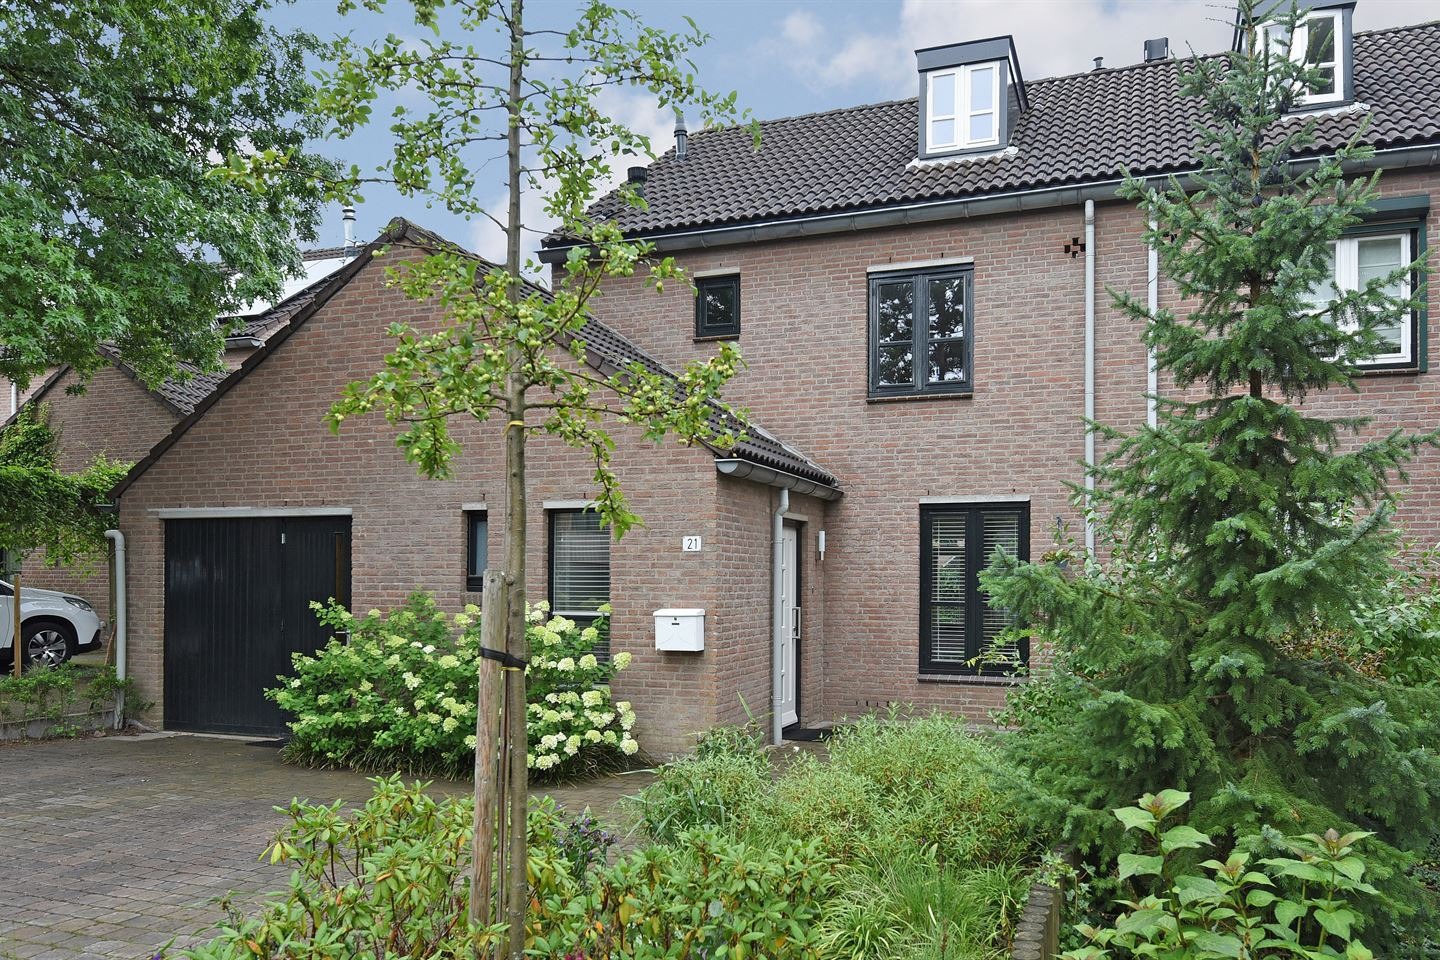 View photo 1 of Oude Bovensteweg 21